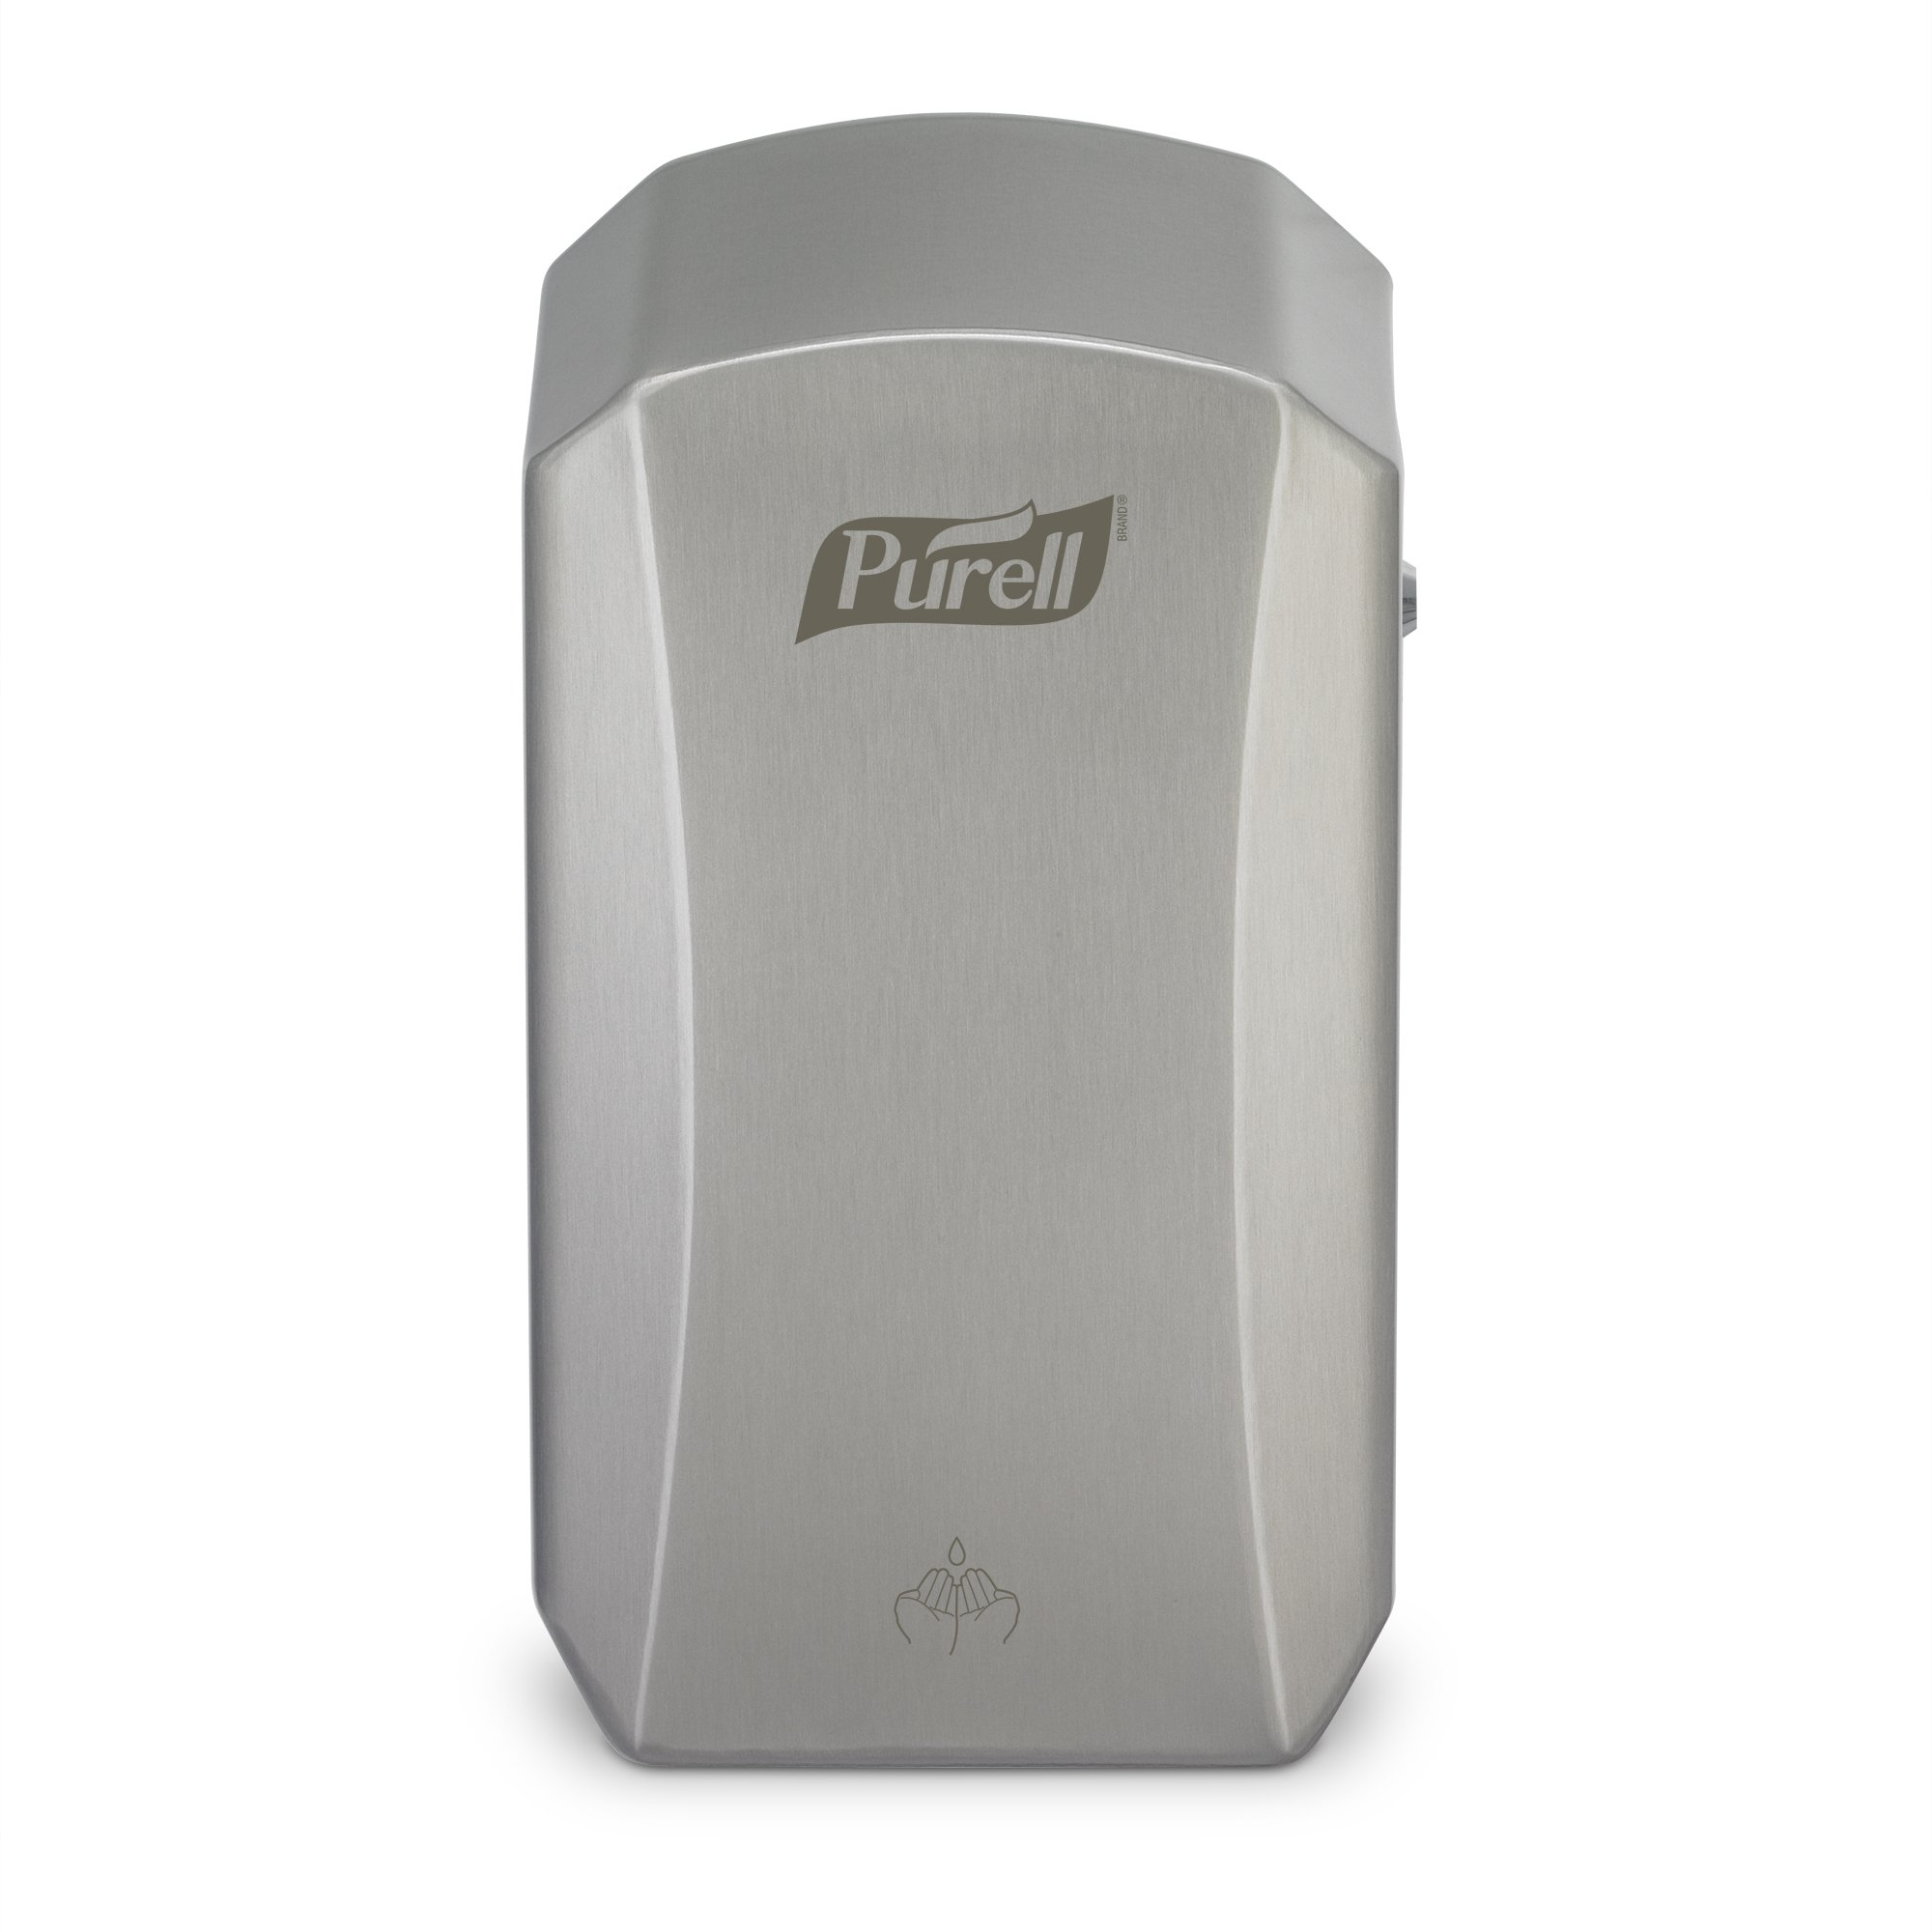 Purell 1926-01-DLY LTX Behavioral Health Dispenser with Output Delay, Silver